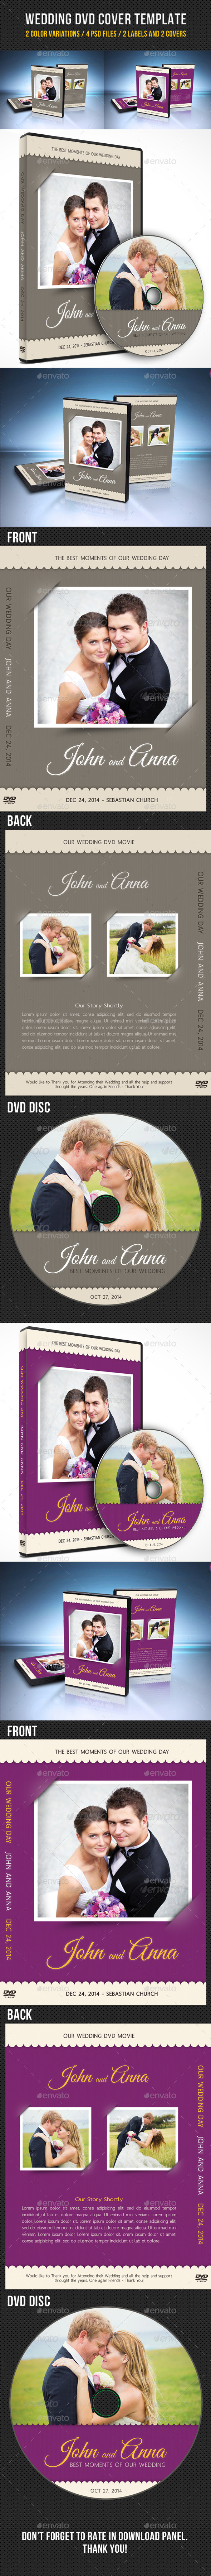 Wedding DVD Cover Template 08 - CD & DVD Artwork Print Templates